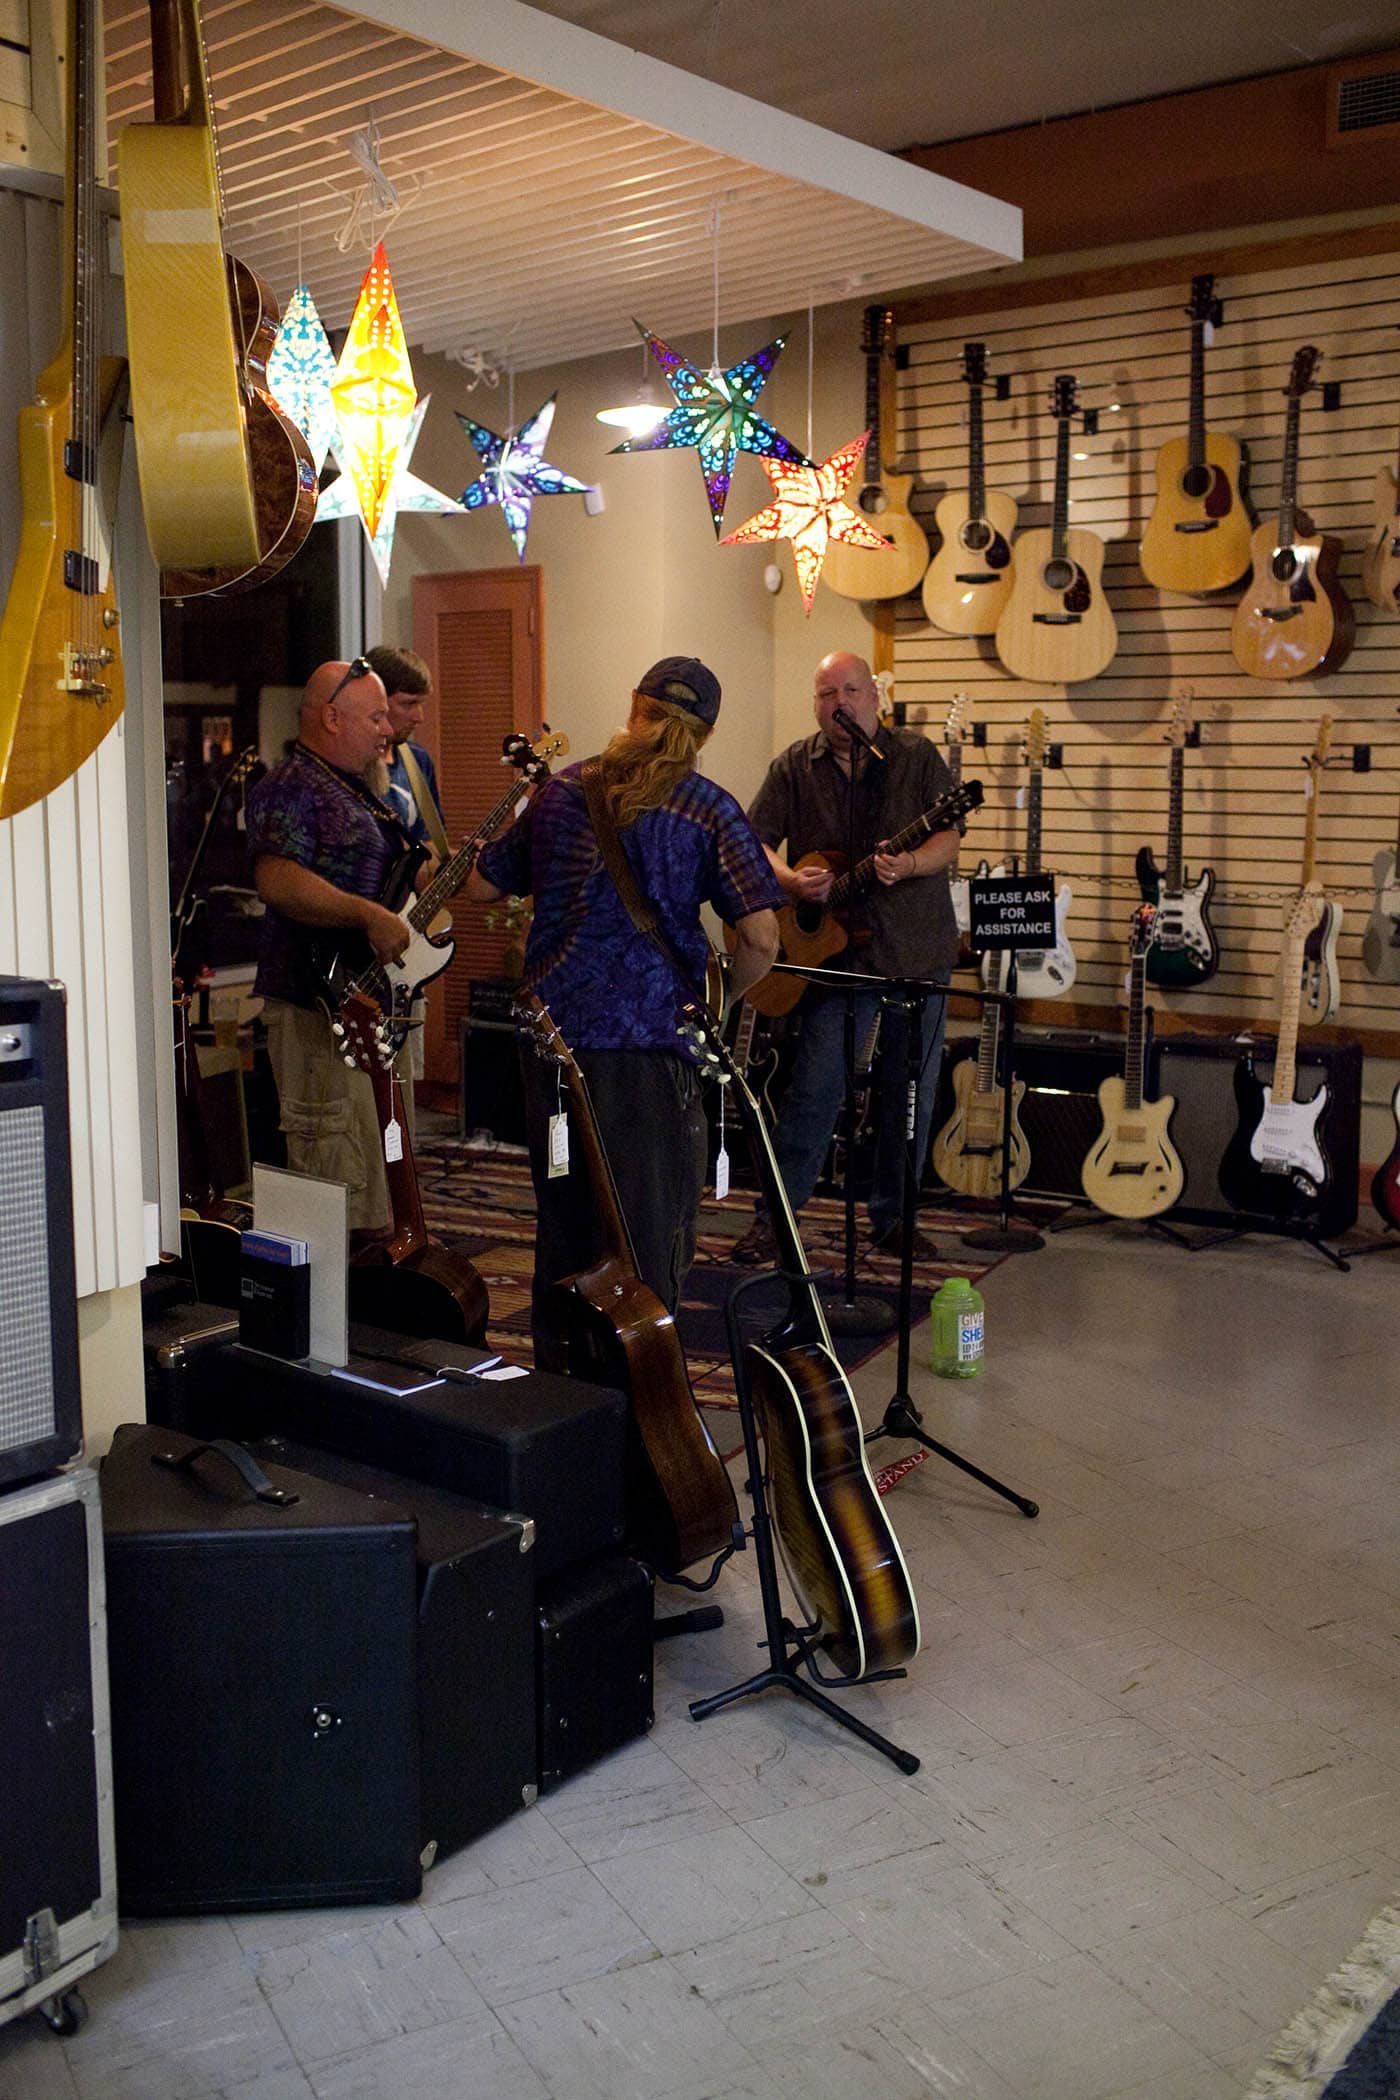 Performance at a guitar shop in Winston-Salem, North Carolina.